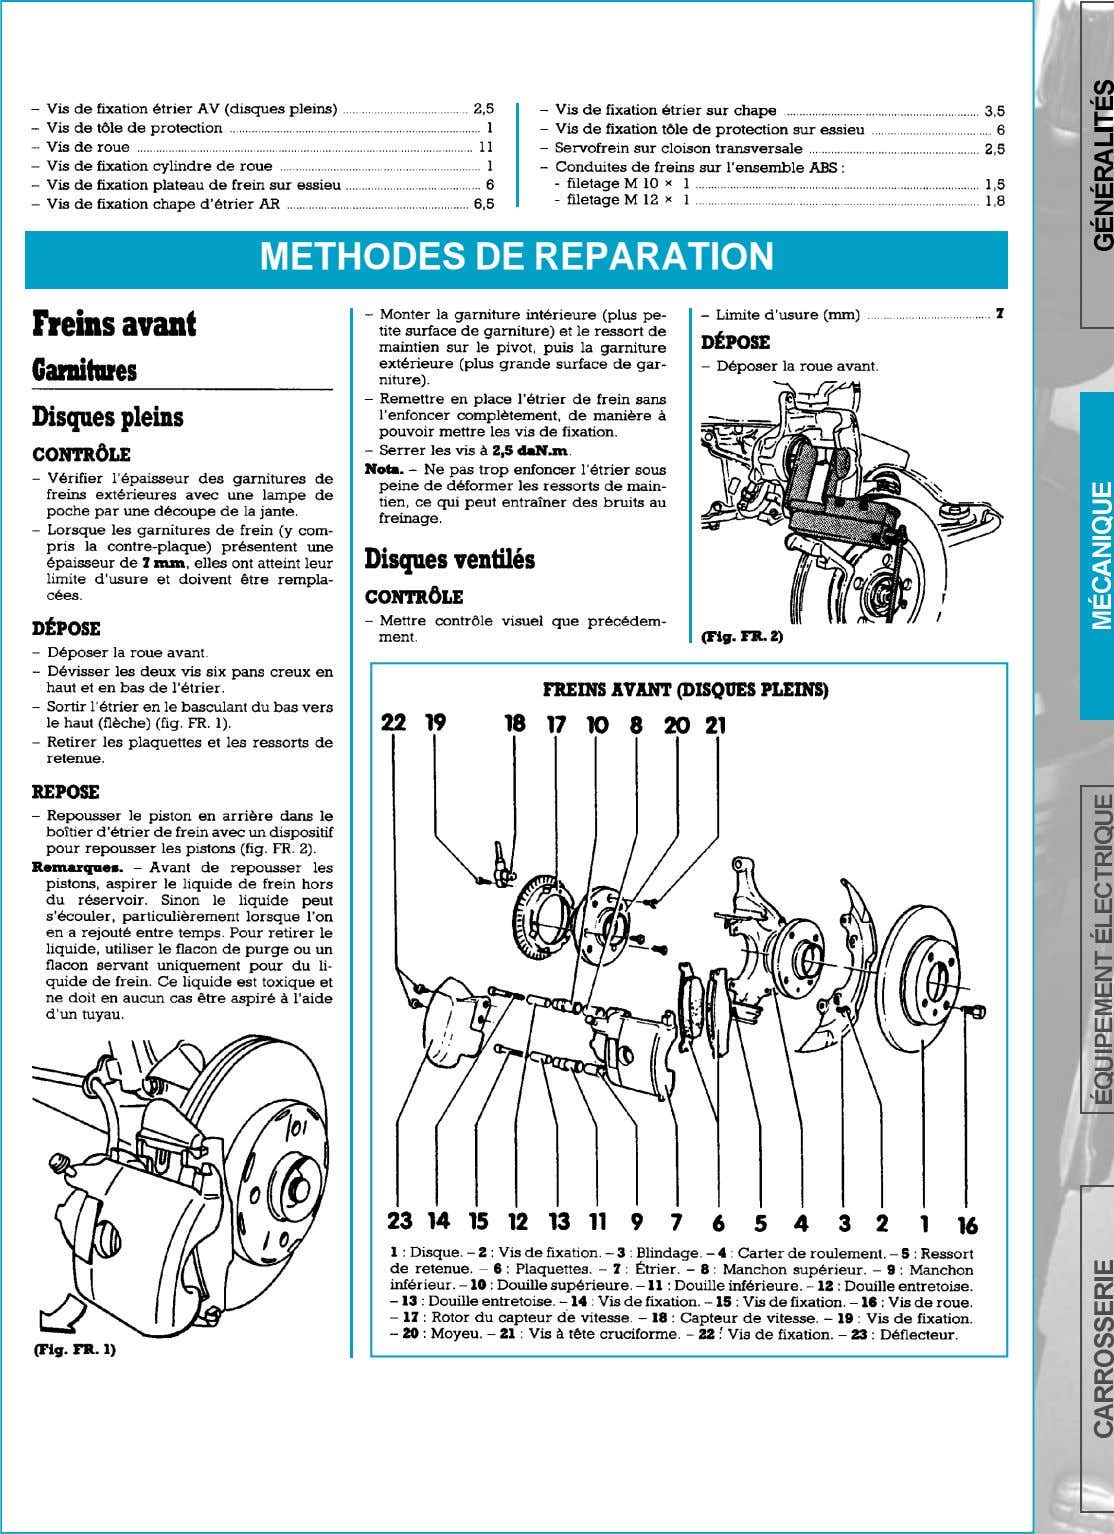 METHODES DE REPARATION